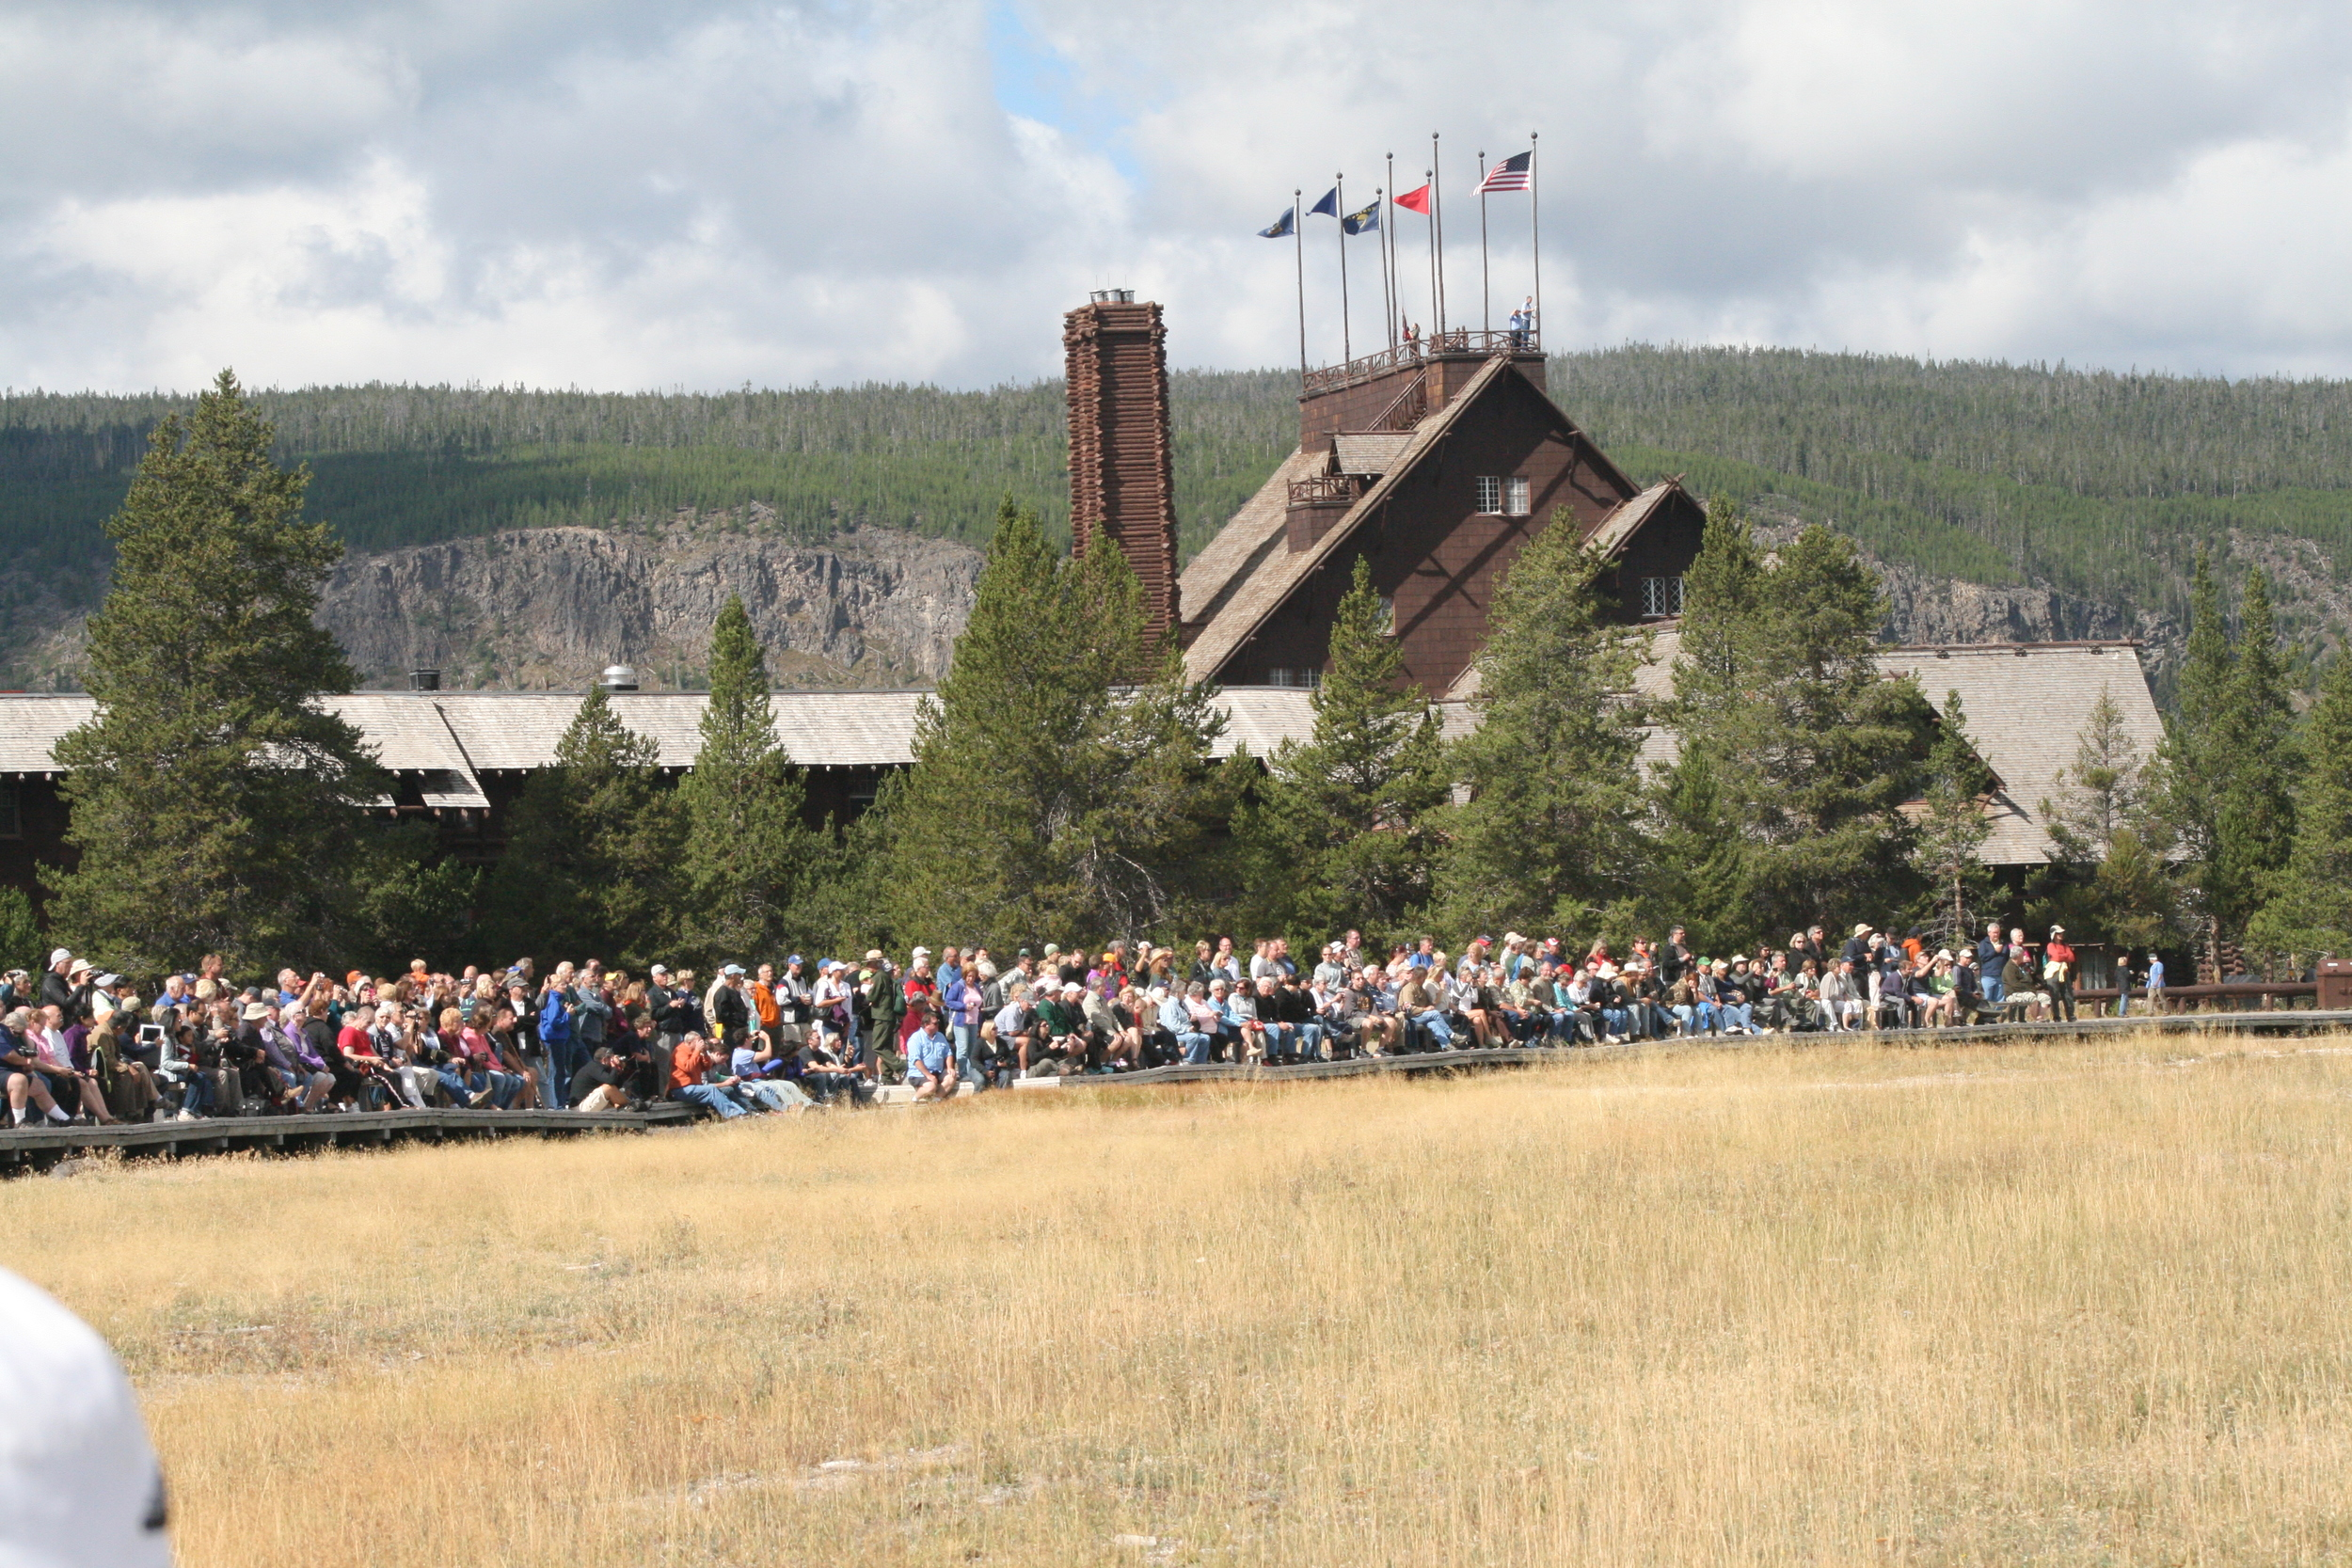 Crowds waiting for Old Faithful